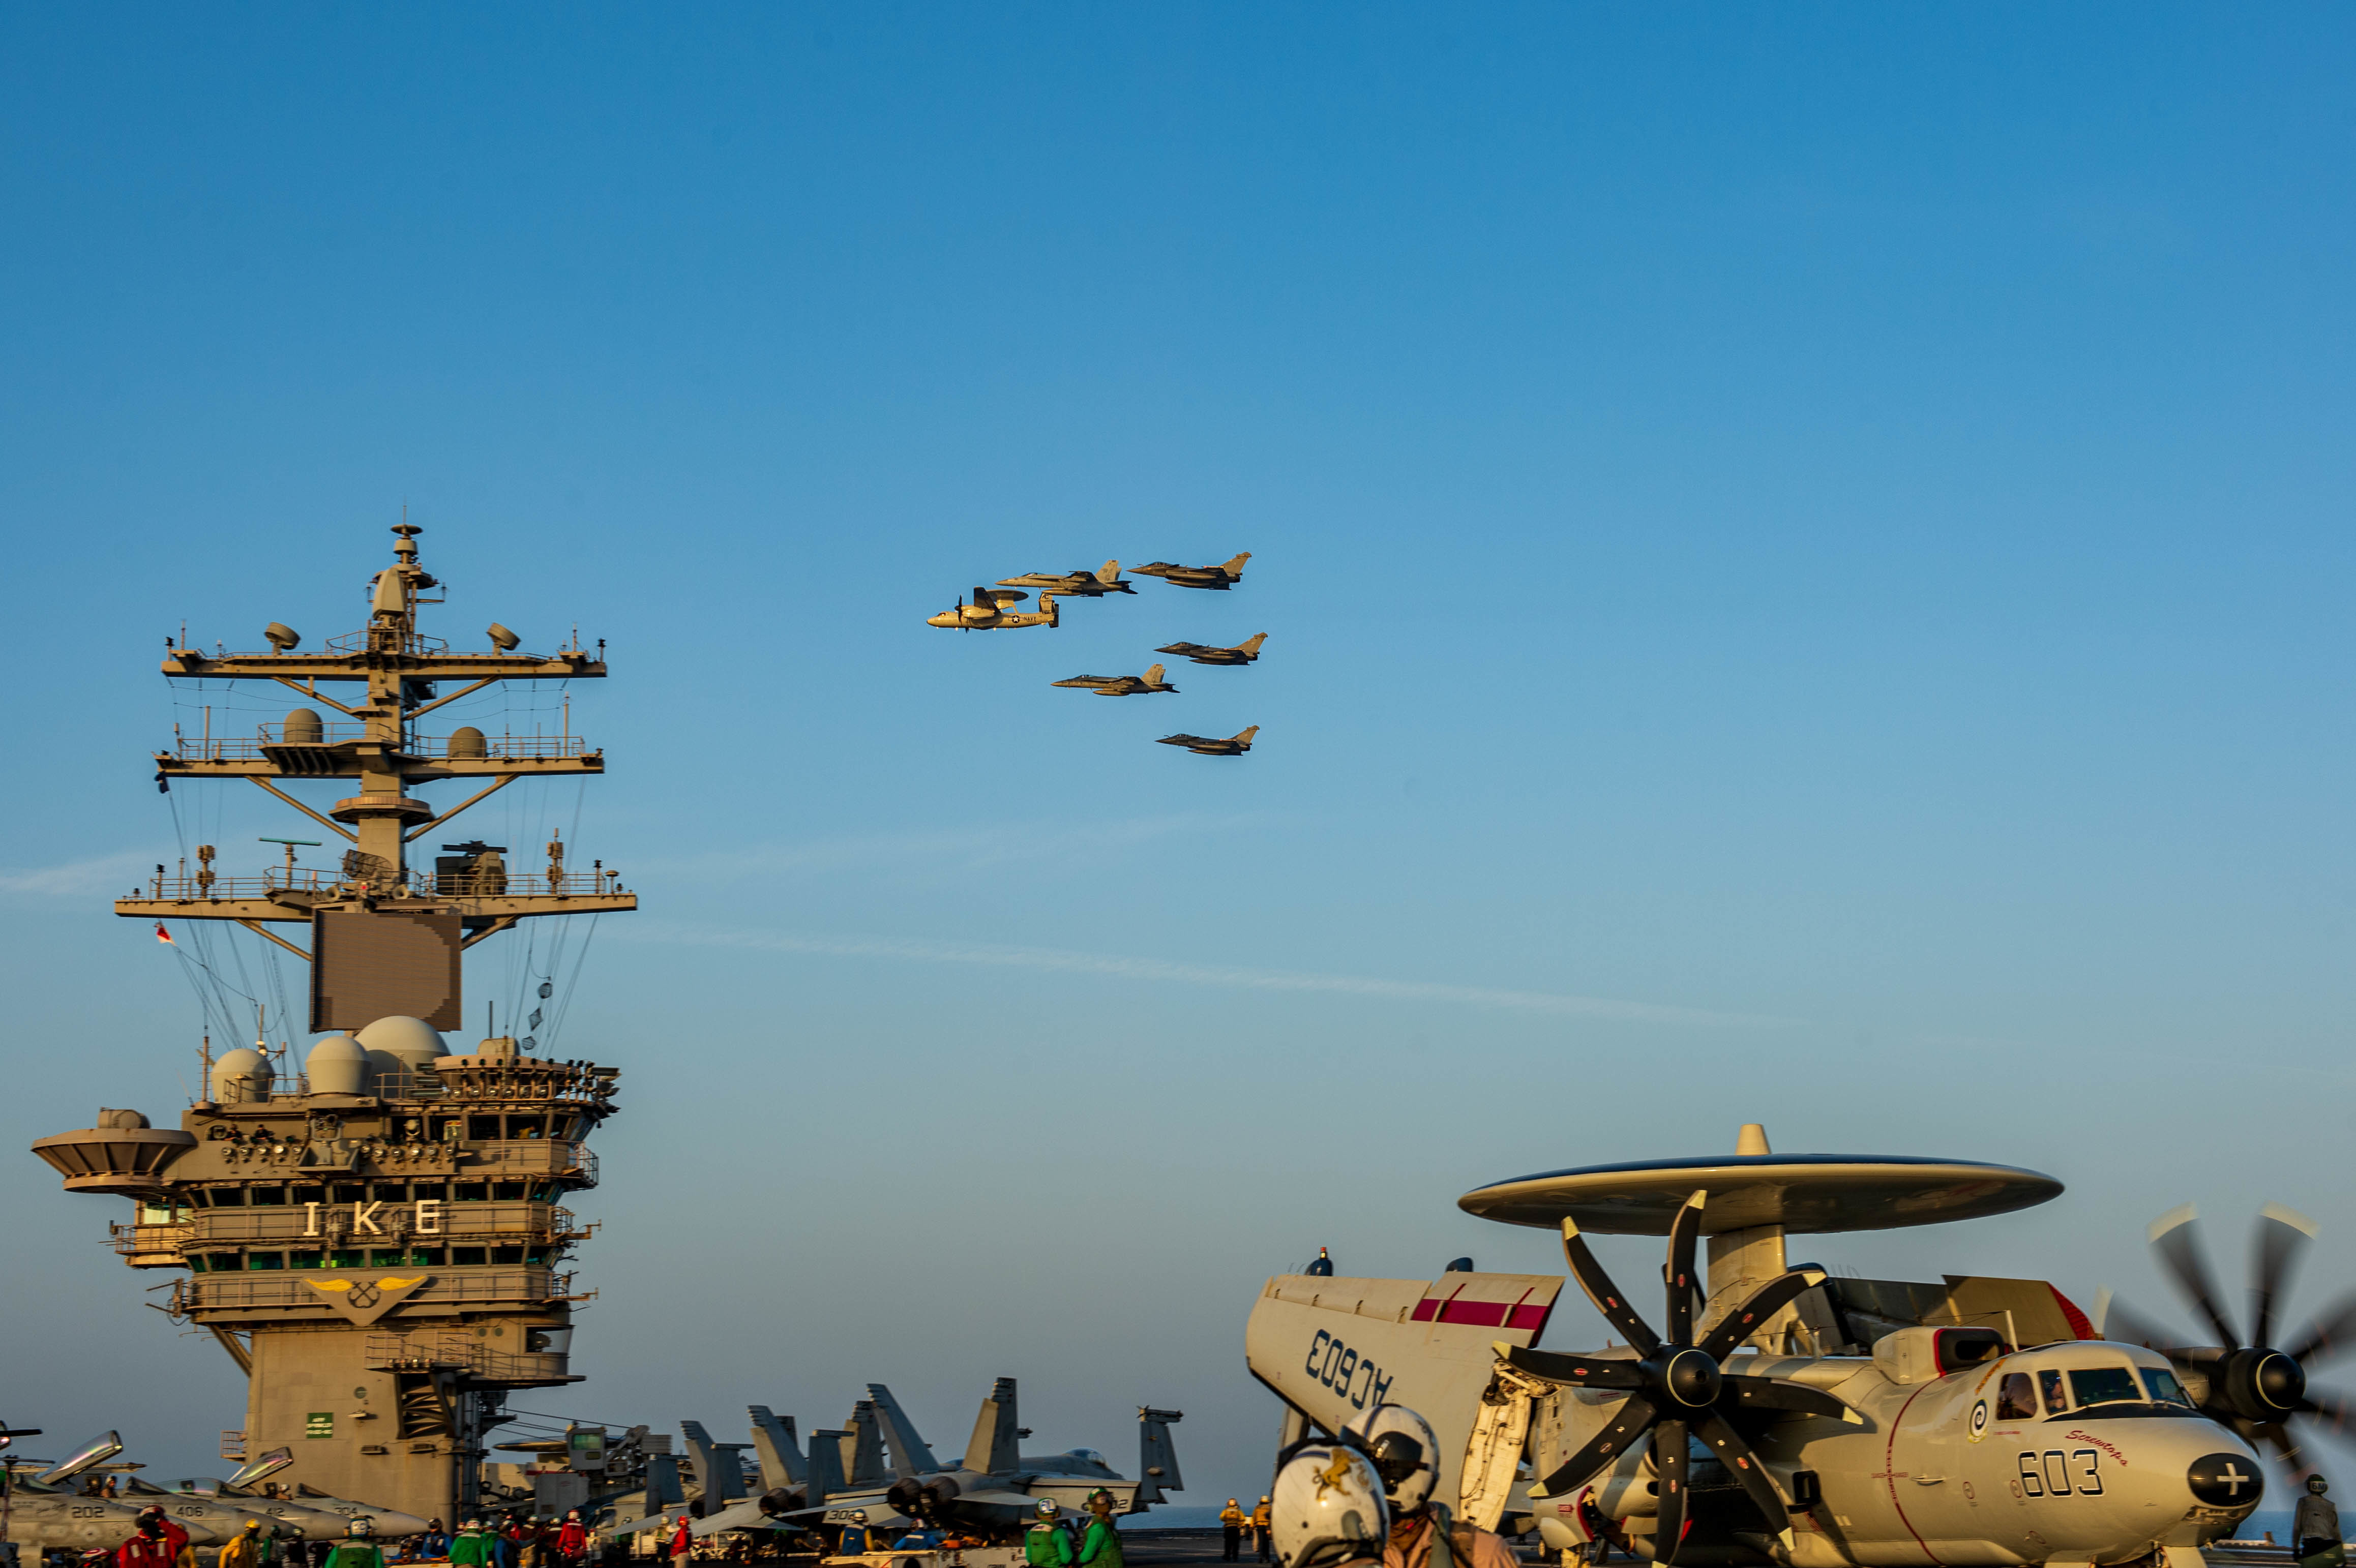 US and French Navies Carrier Strike Groups Conduct Dual Carrier Operations in 5th Fleet